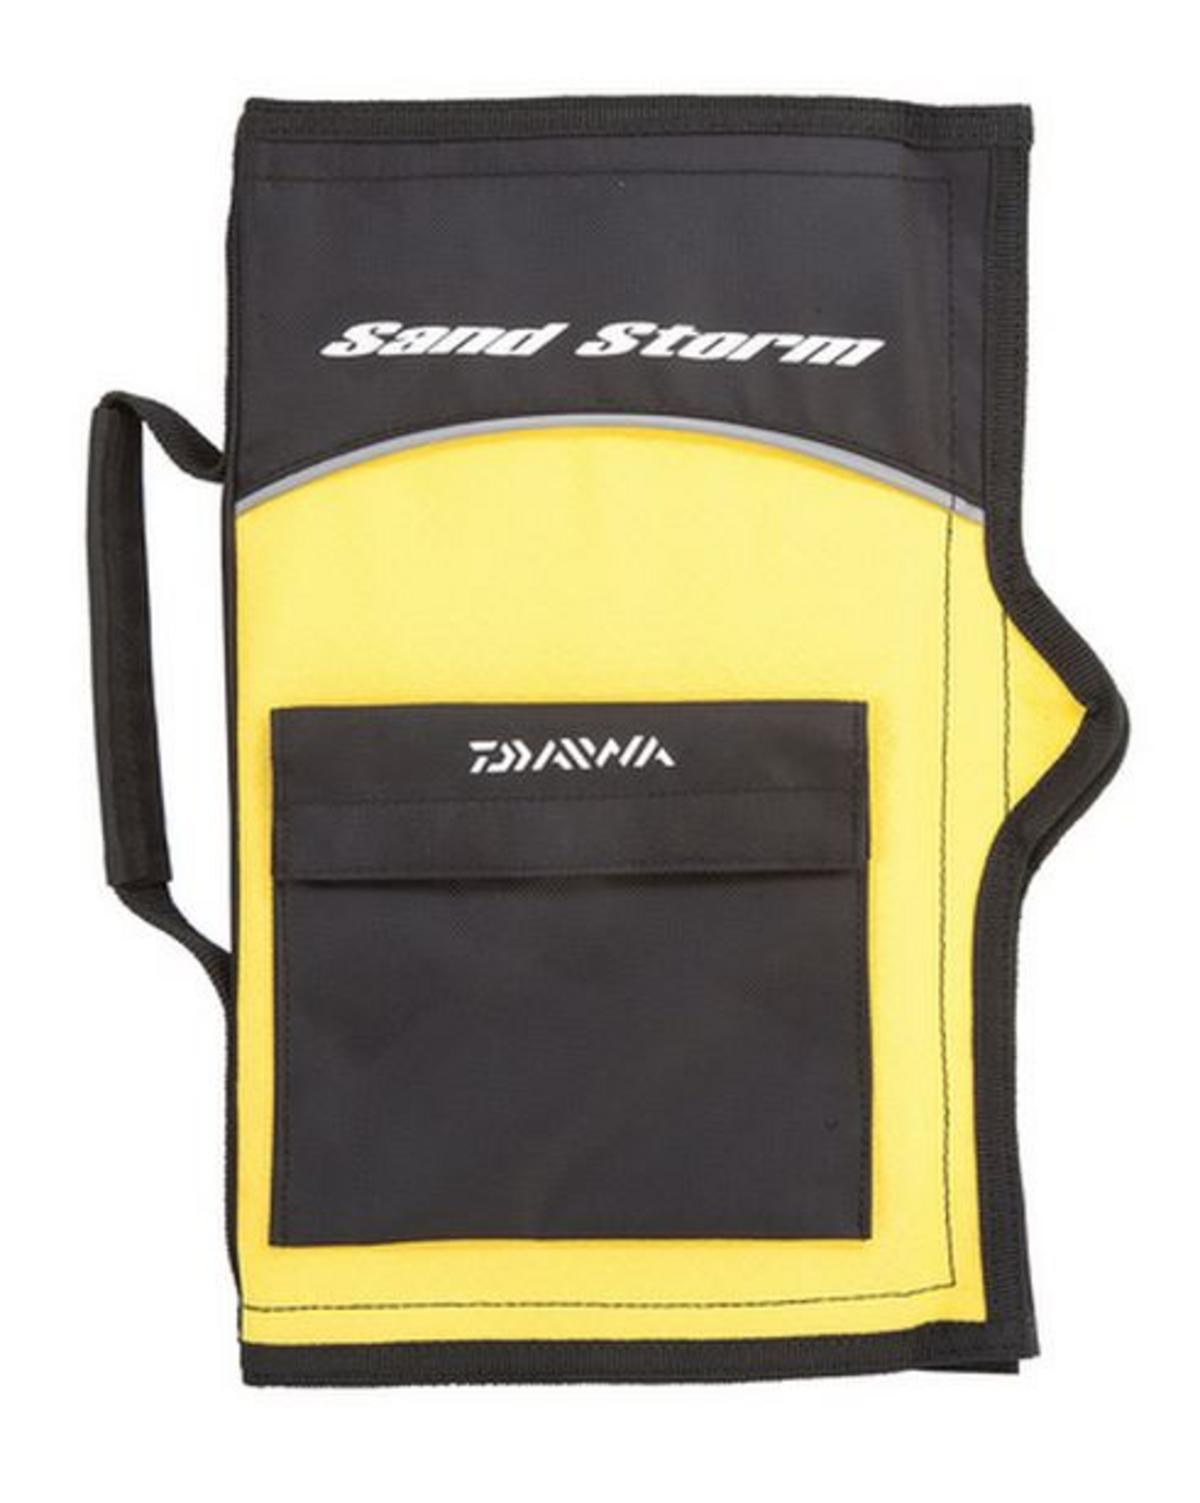 New Daiwa Sandstorm Sea Rig Wallet - XL - DSSRW-2